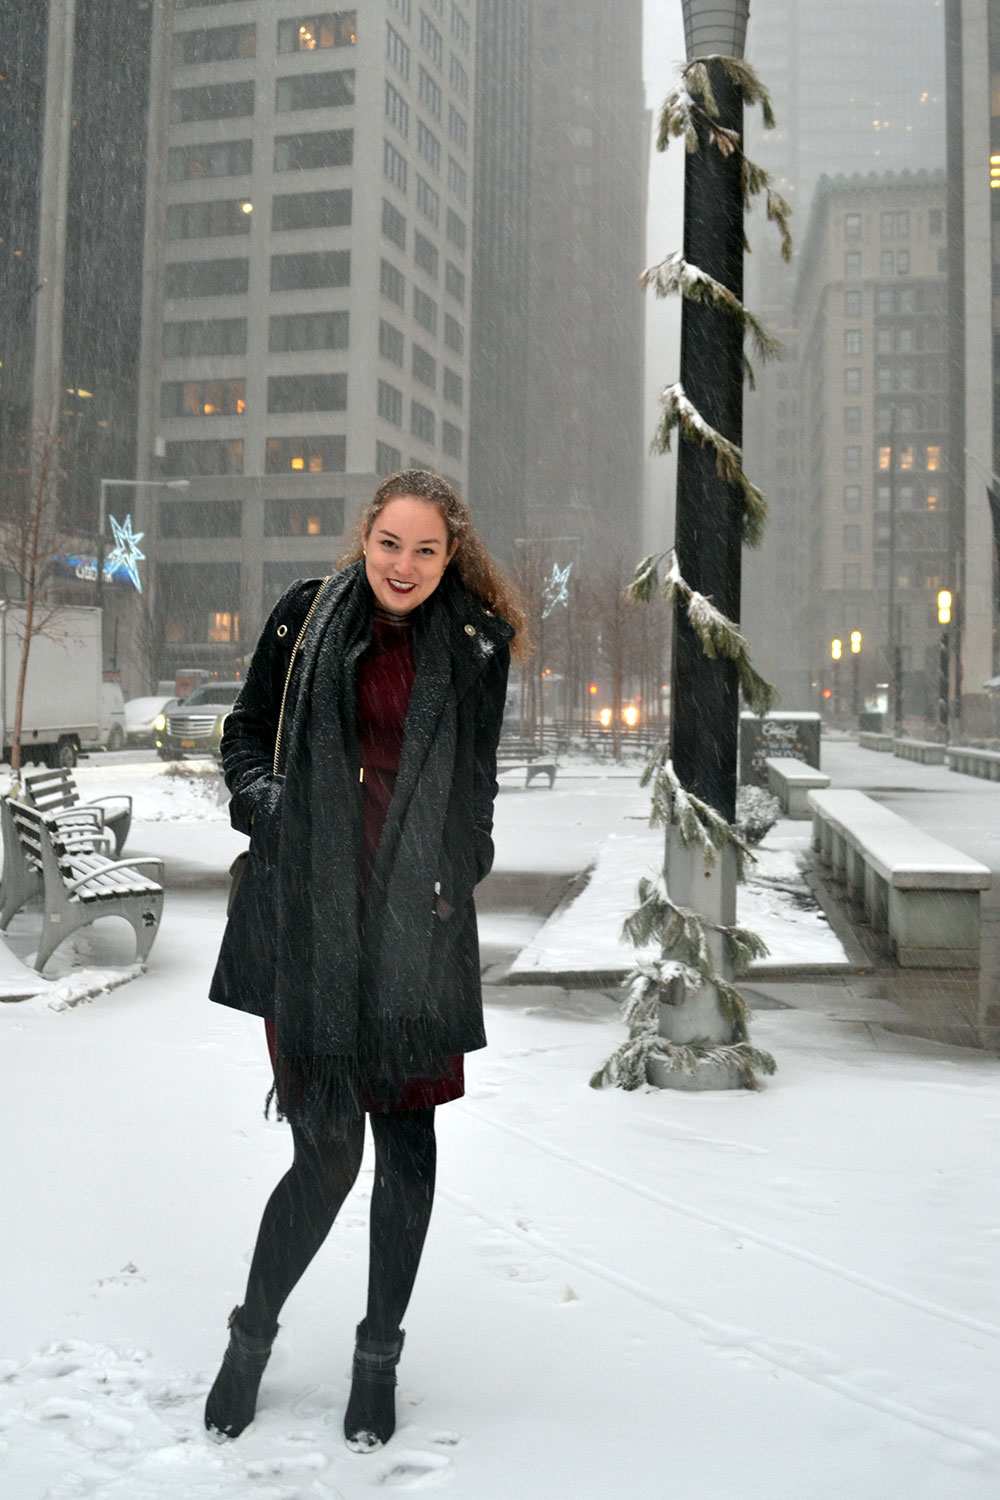 Outfit: Wearing Dresses in Winter - Winterdress 2